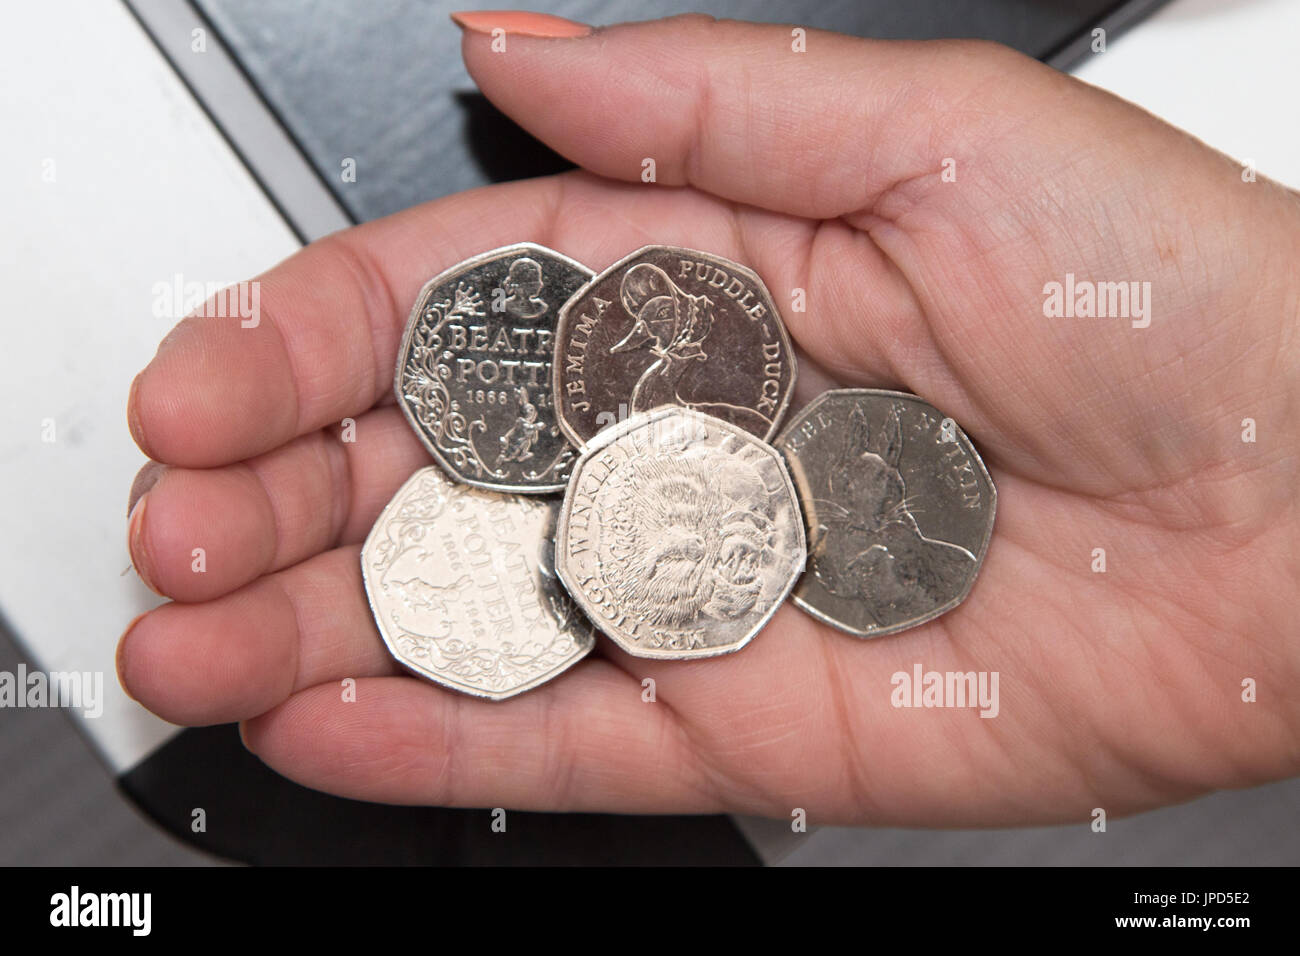 Beatrix Potter collectors British fifty pence coins in circulation jemima puddle-duck mrs tiggy-winkle squirrel nutkin in womans hand - Stock Image